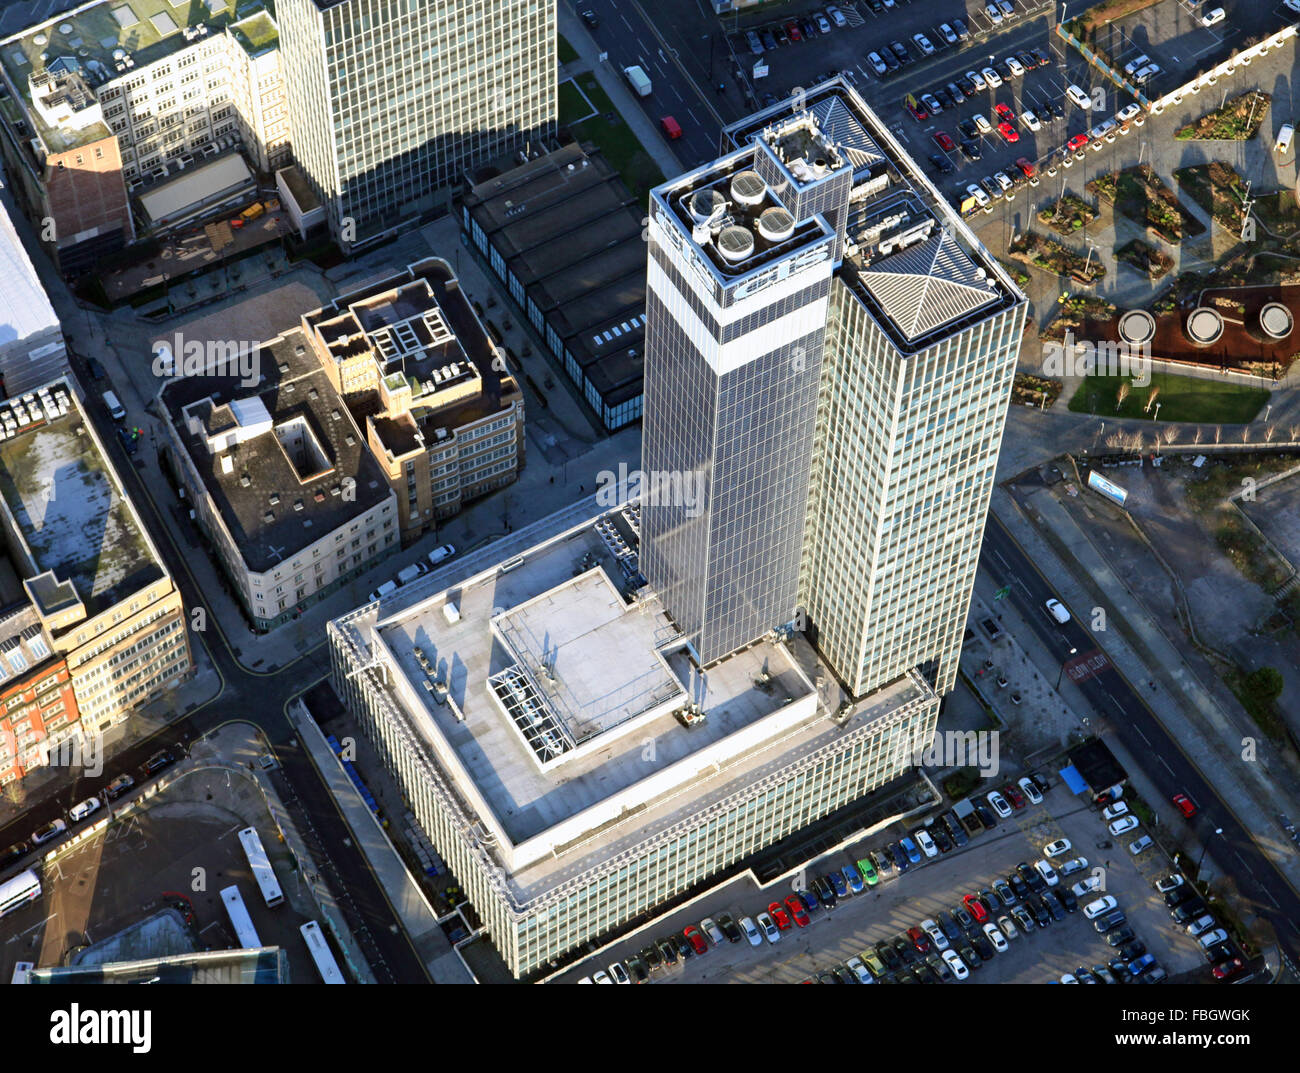 aerial view of the CIS Tower in Manchester, UK - Stock Image